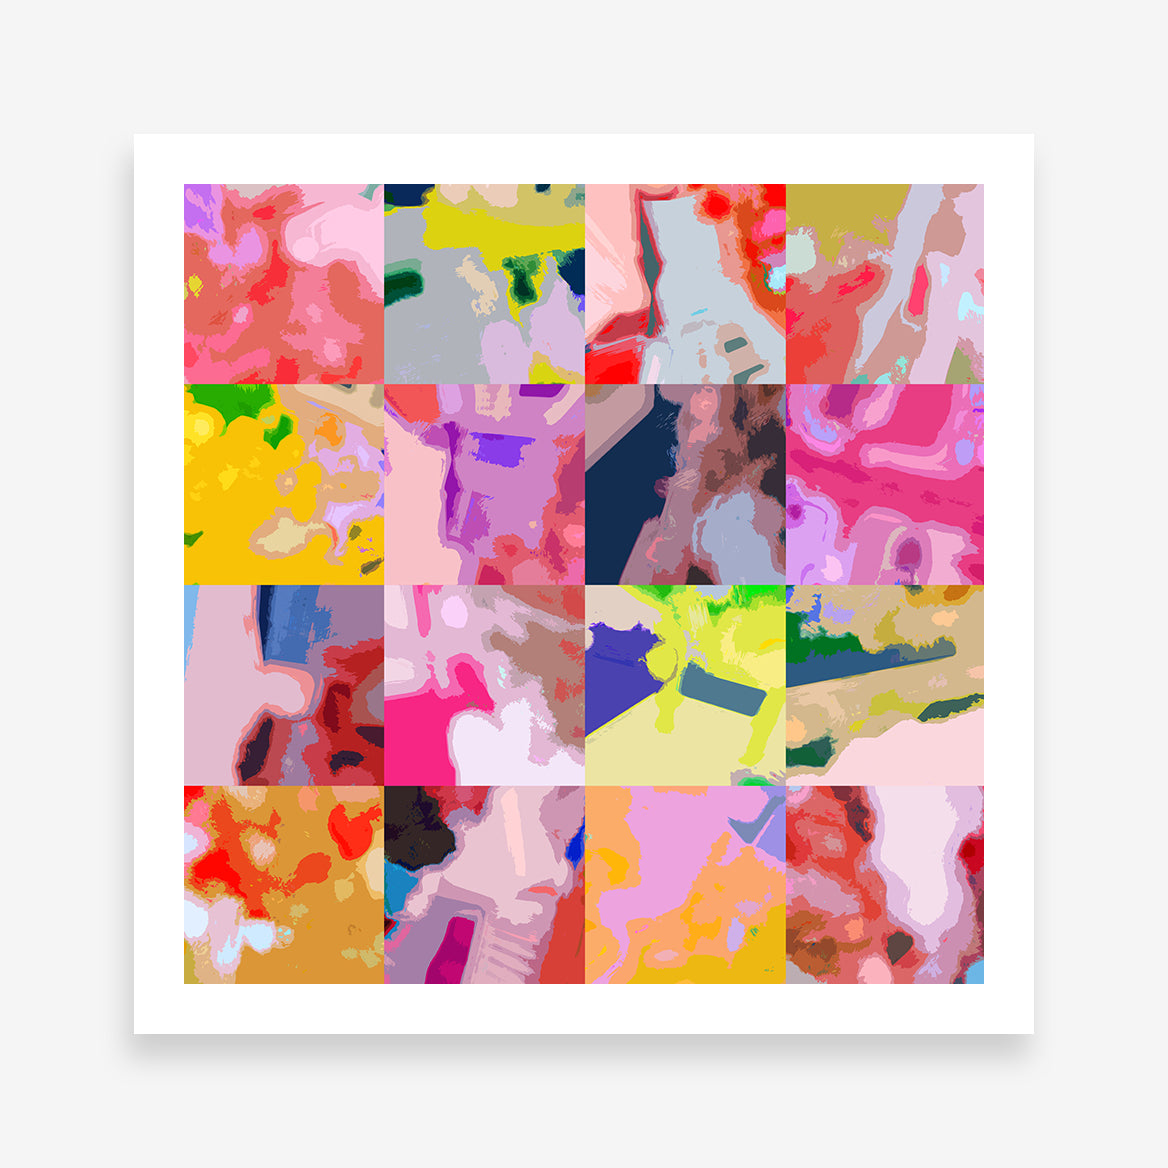 Square poster print with colourful abstract digital art collection.